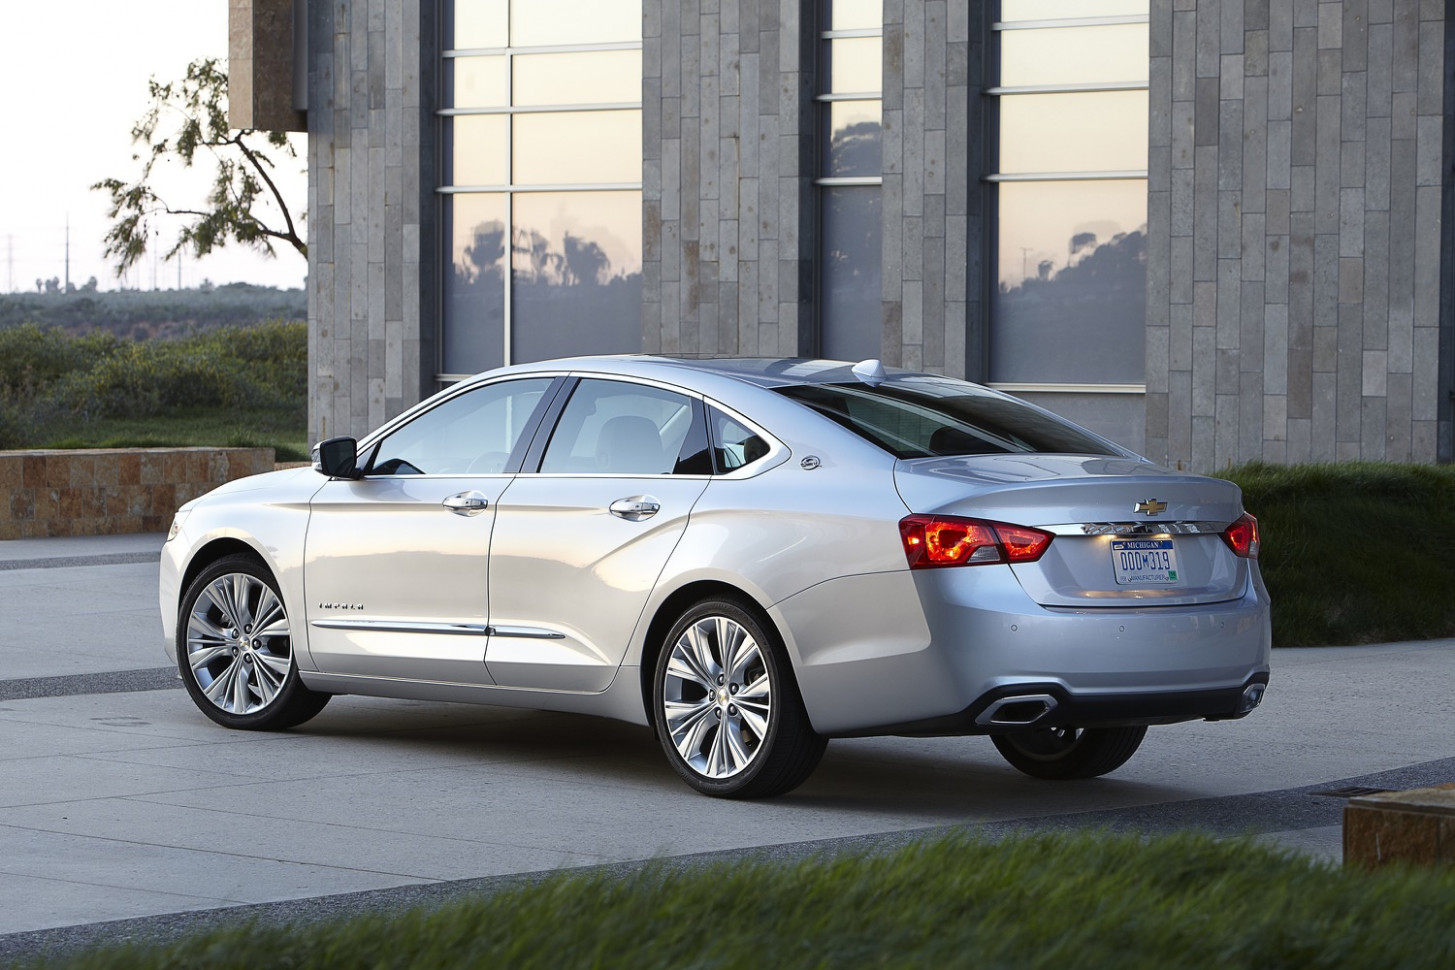 Chevrolet Discount For Impala Insignificant In July 8 | GM ...